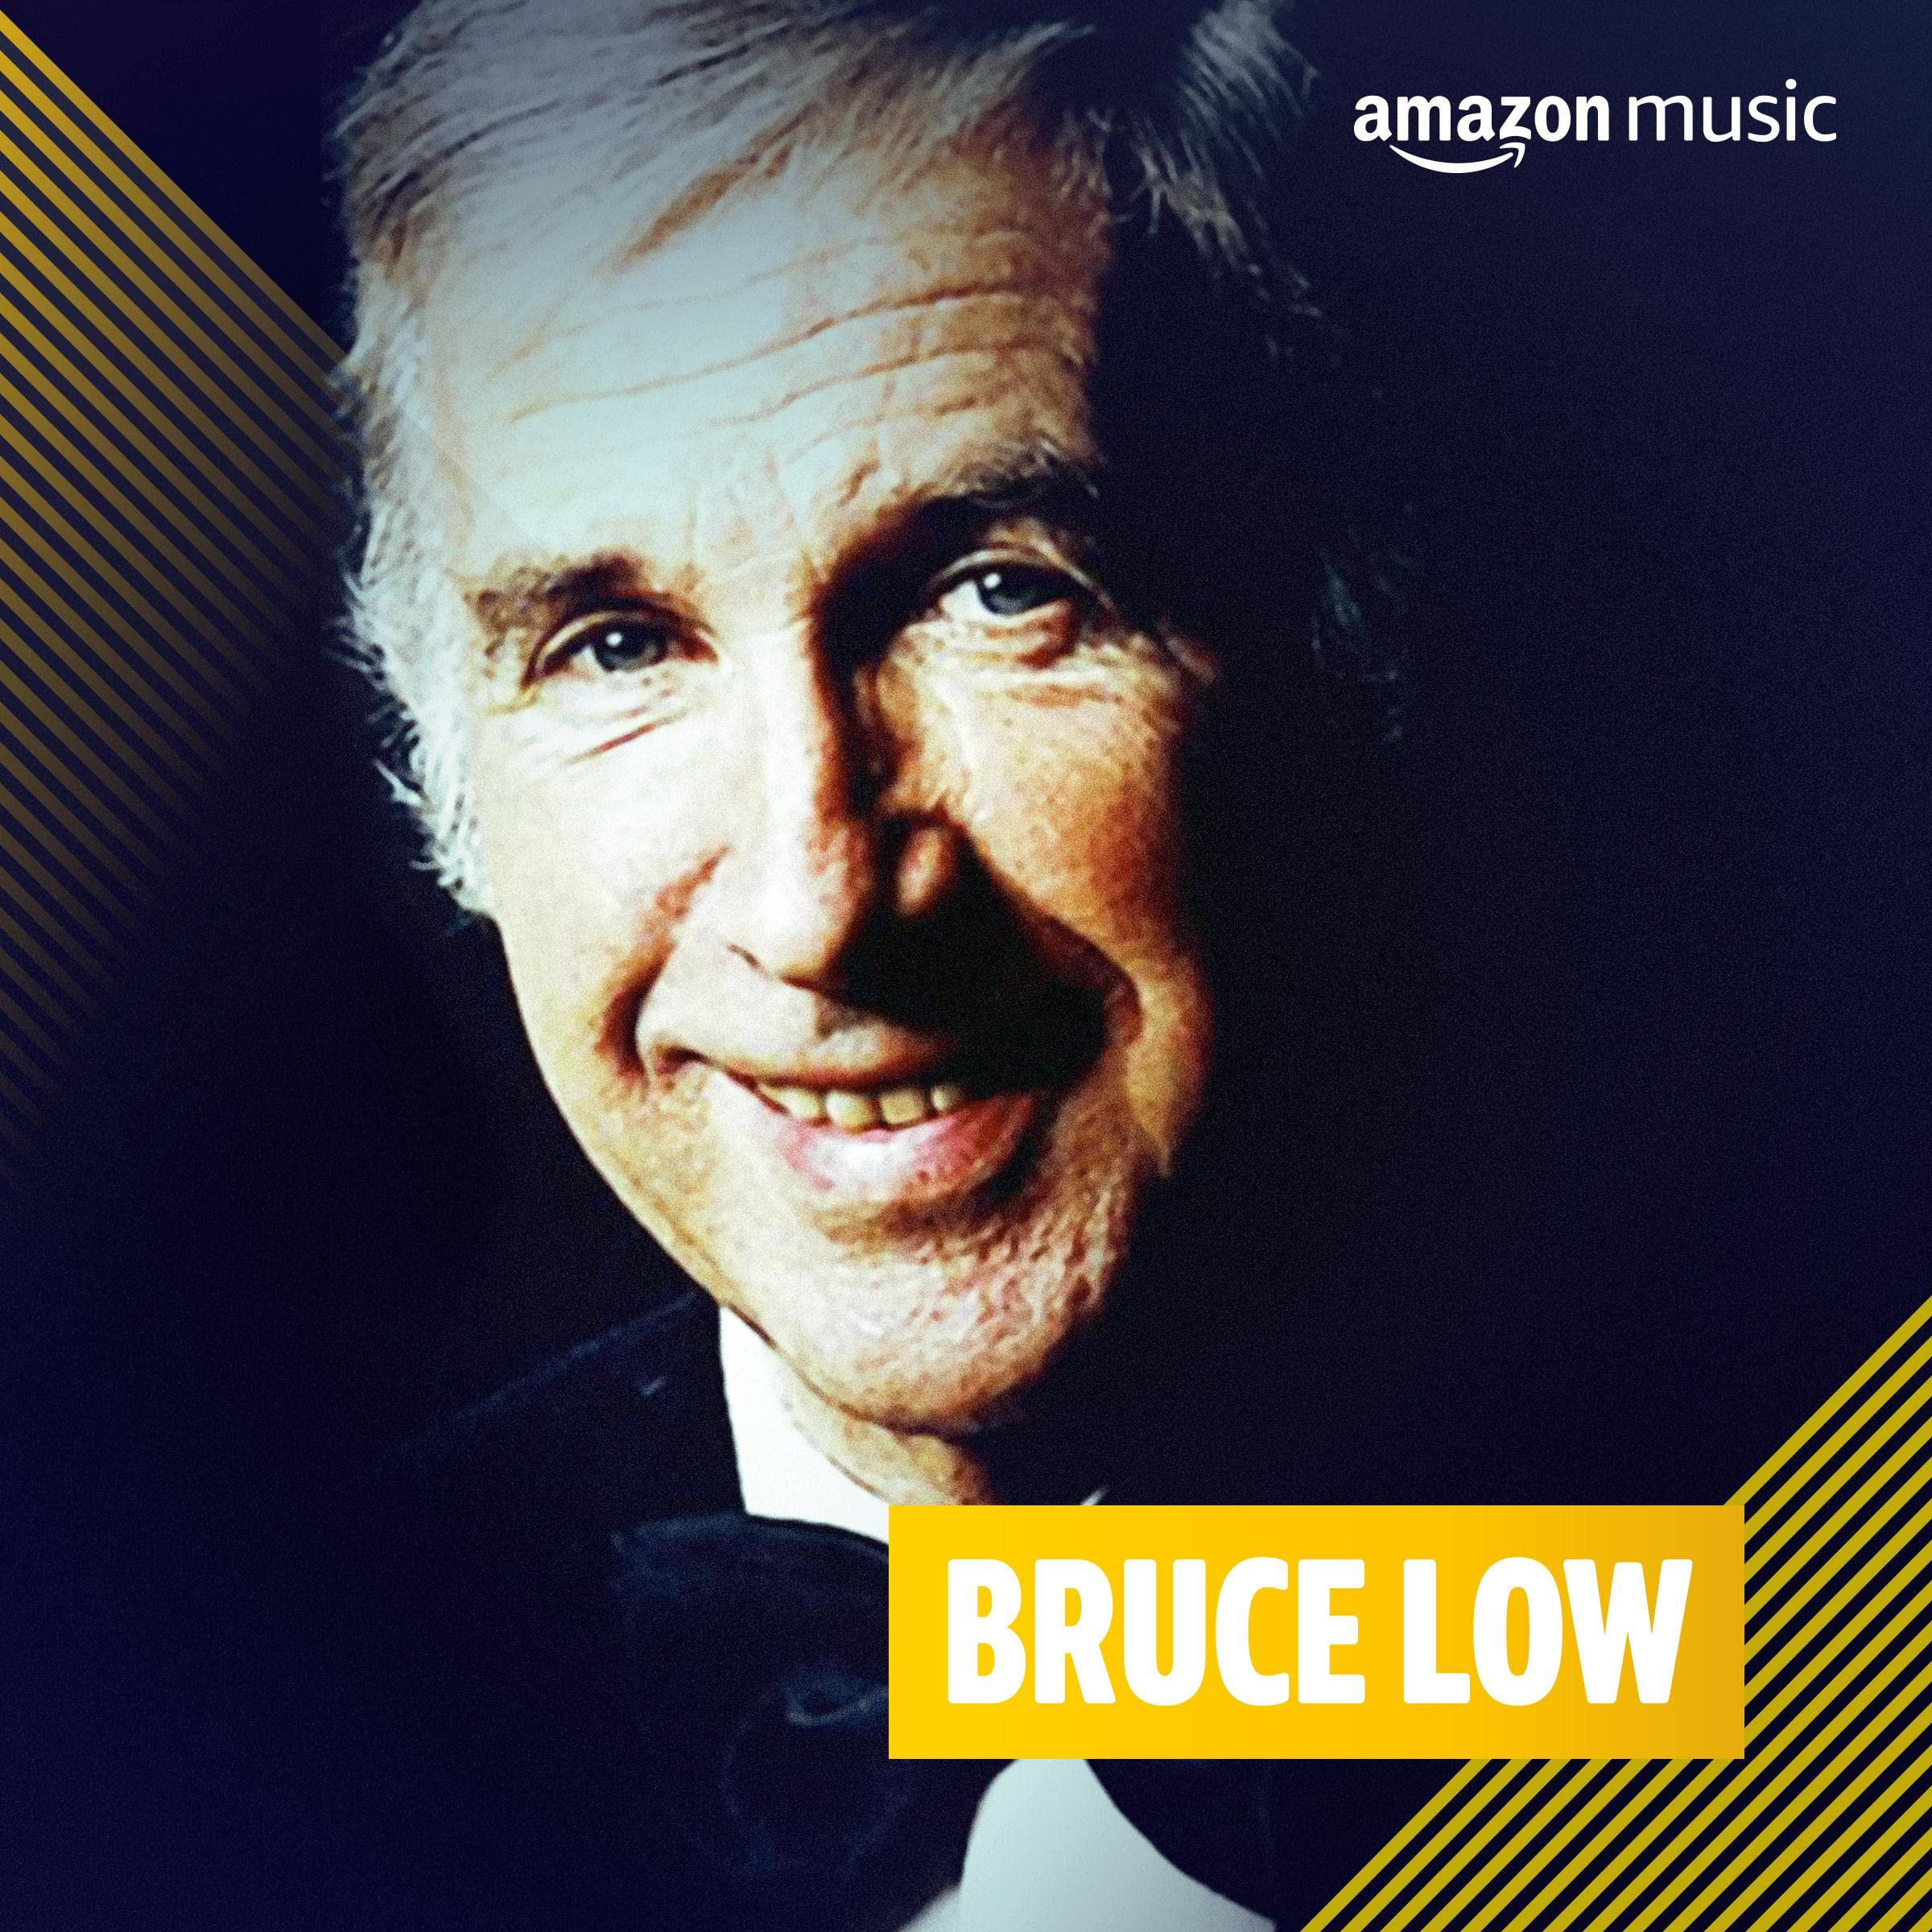 Bruce Low